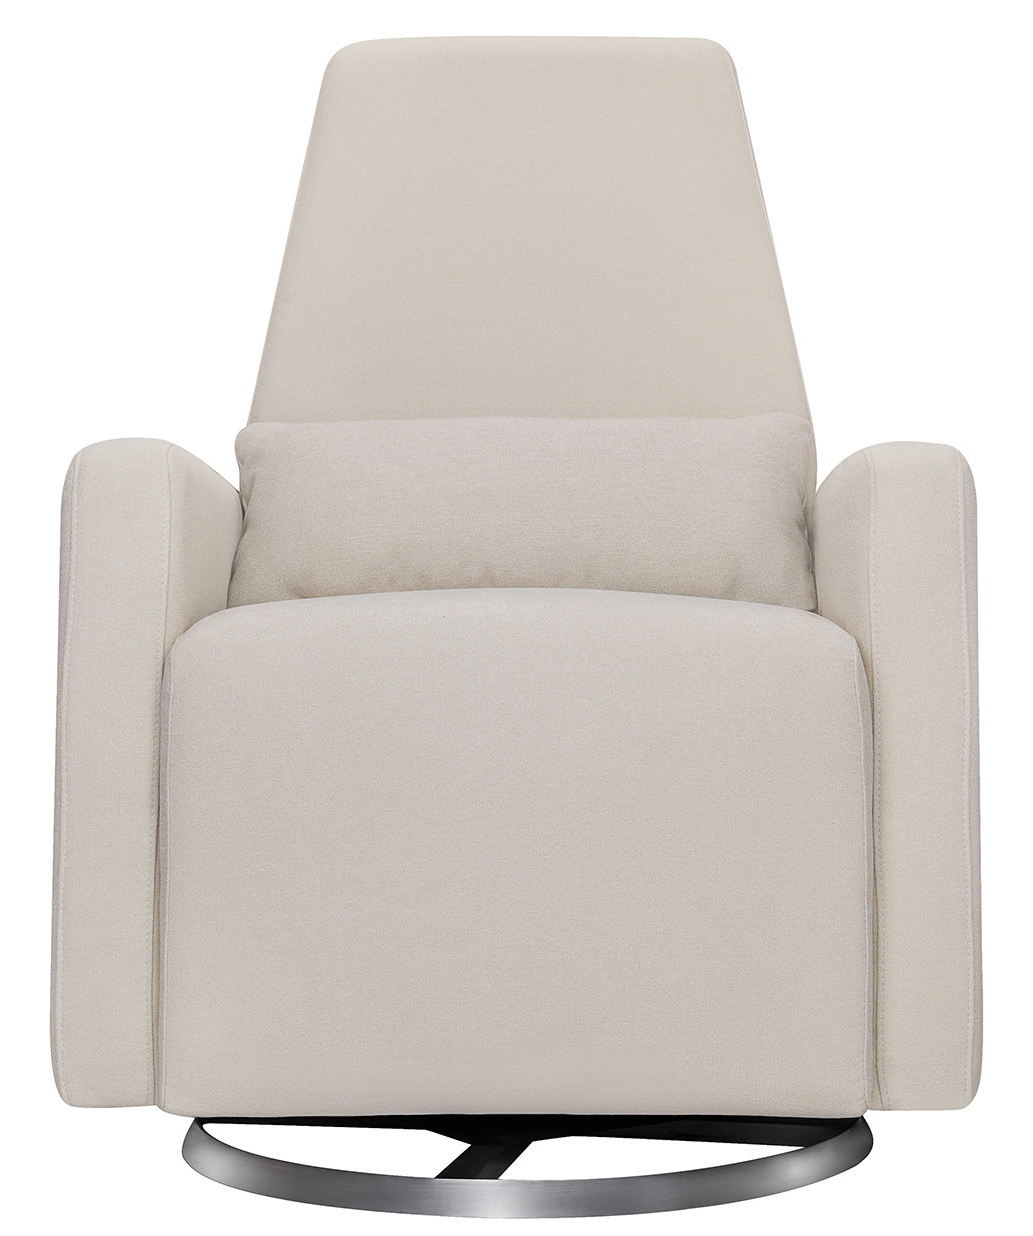 Allmodern With Mari Swivel Glider Recliners (View 1 of 20)